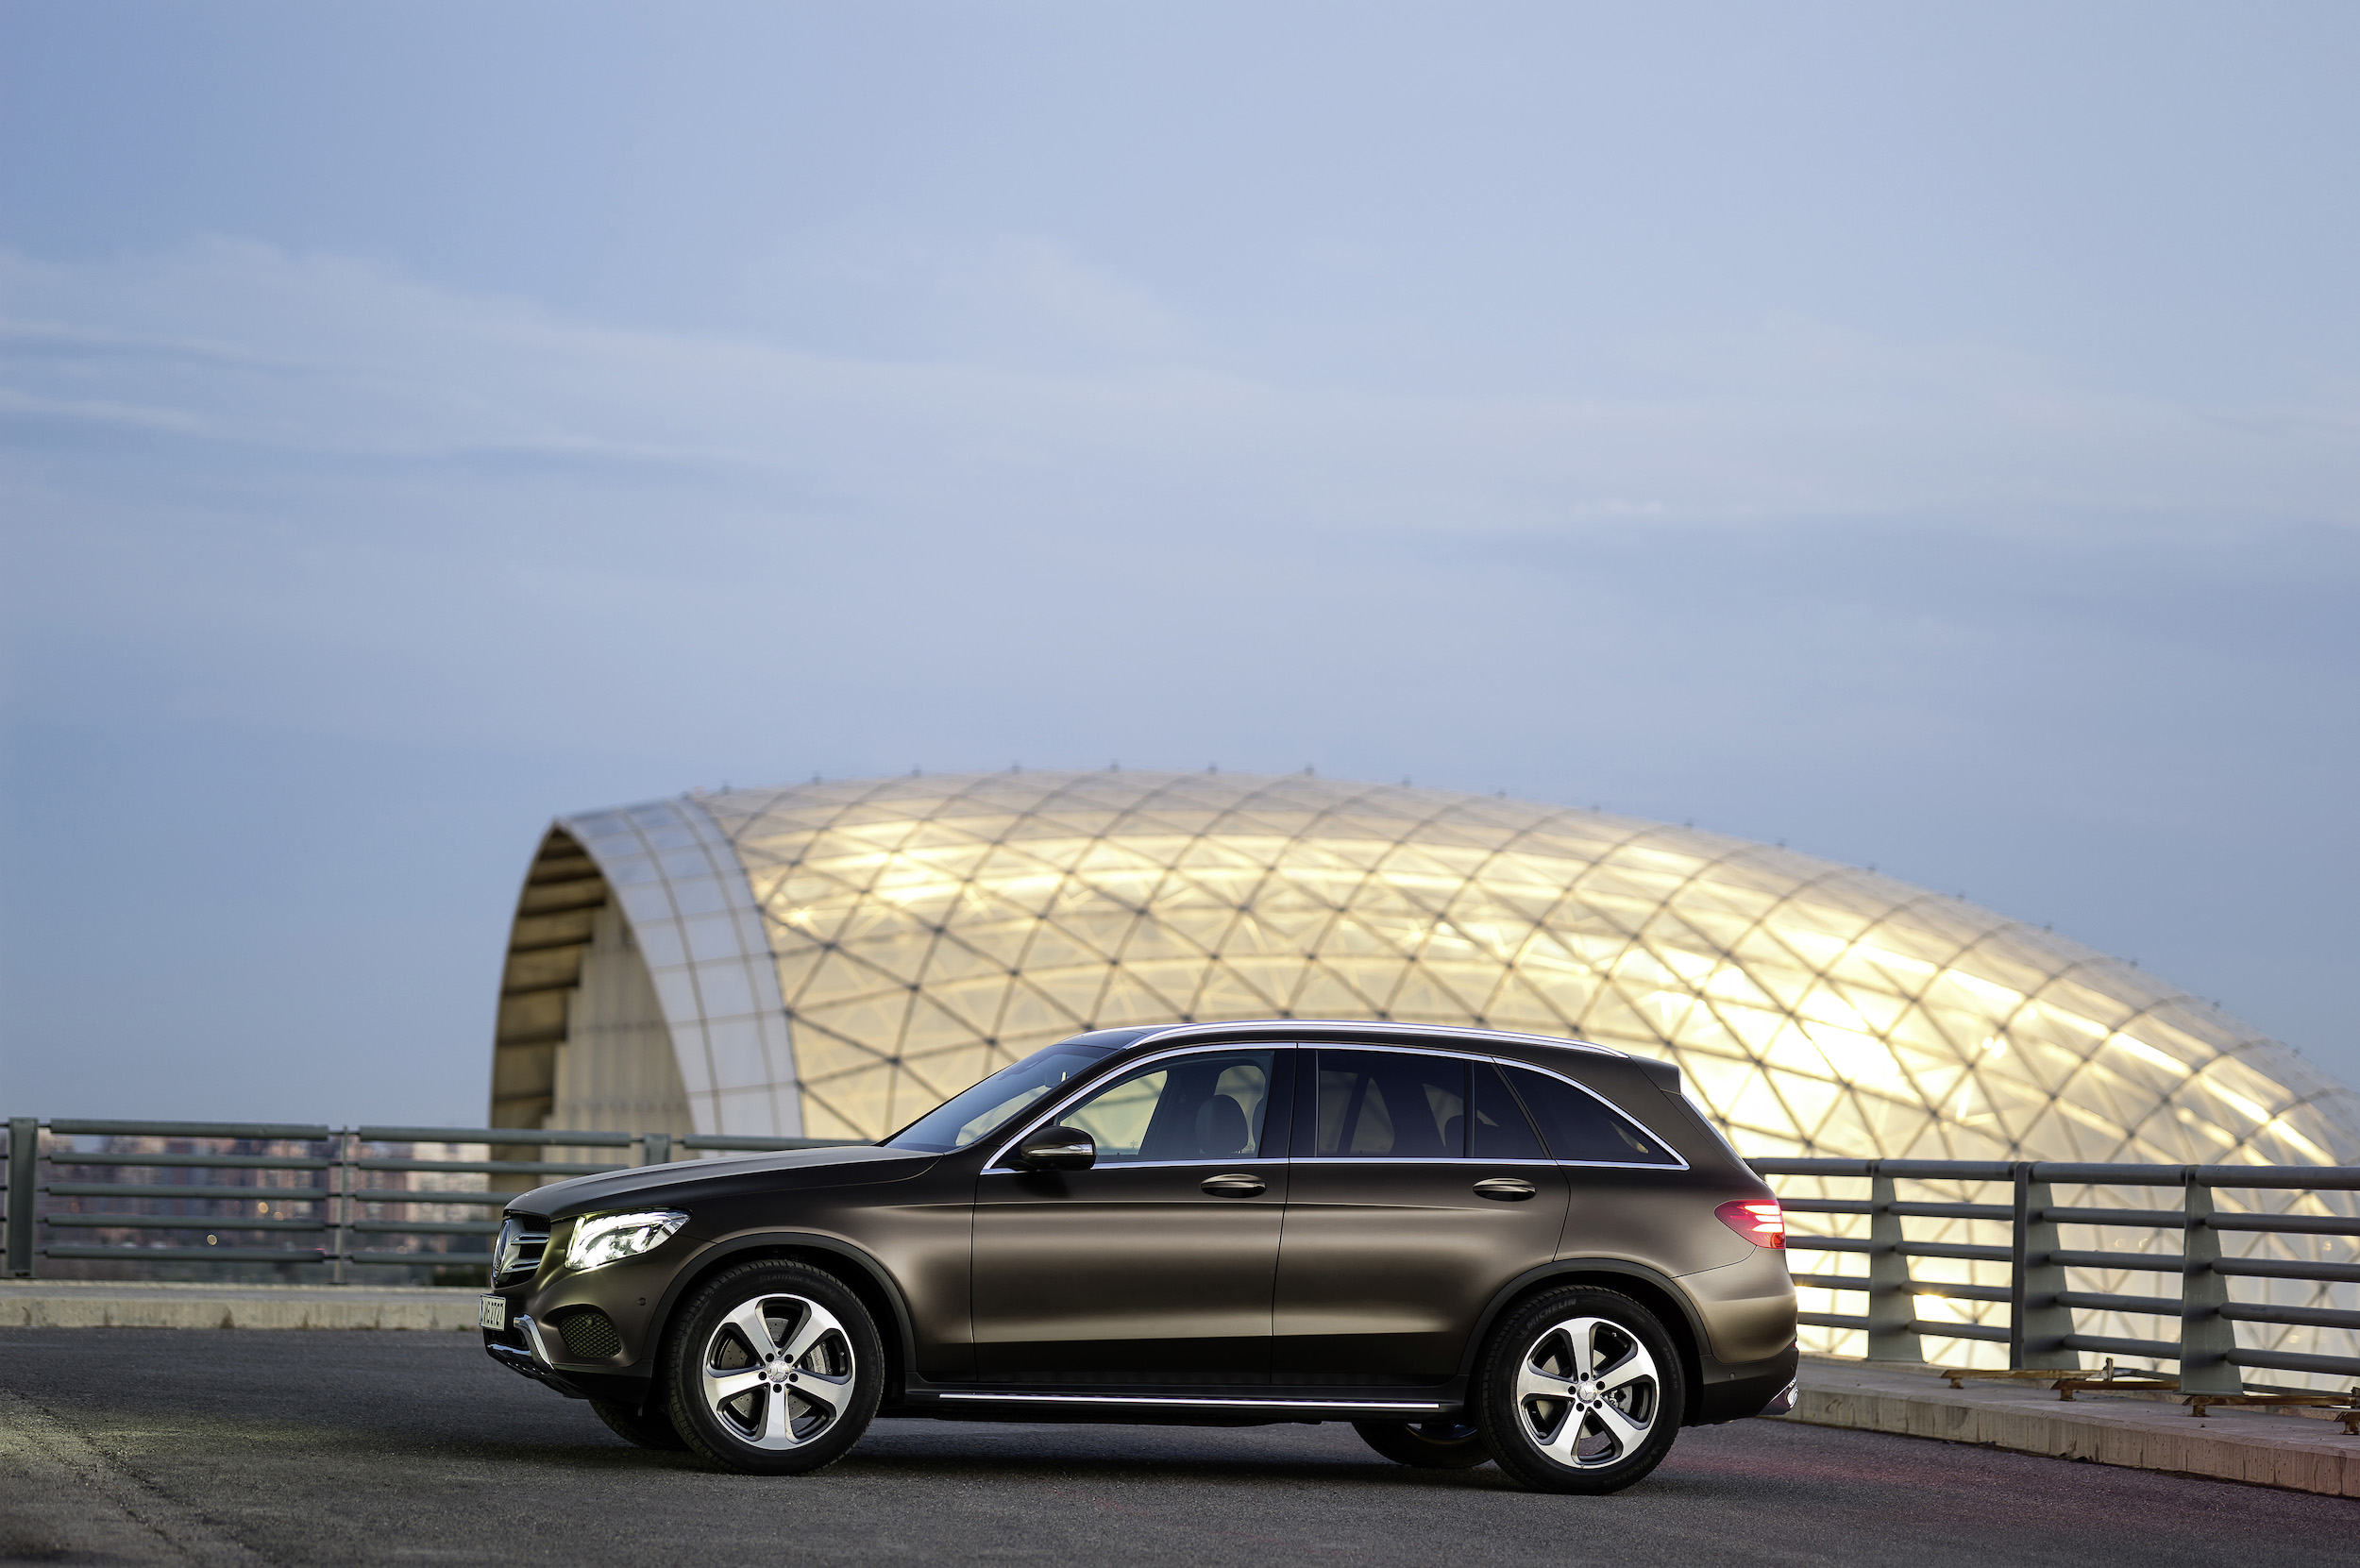 Mercedes benz glc facts and photos for Facts about mercedes benz